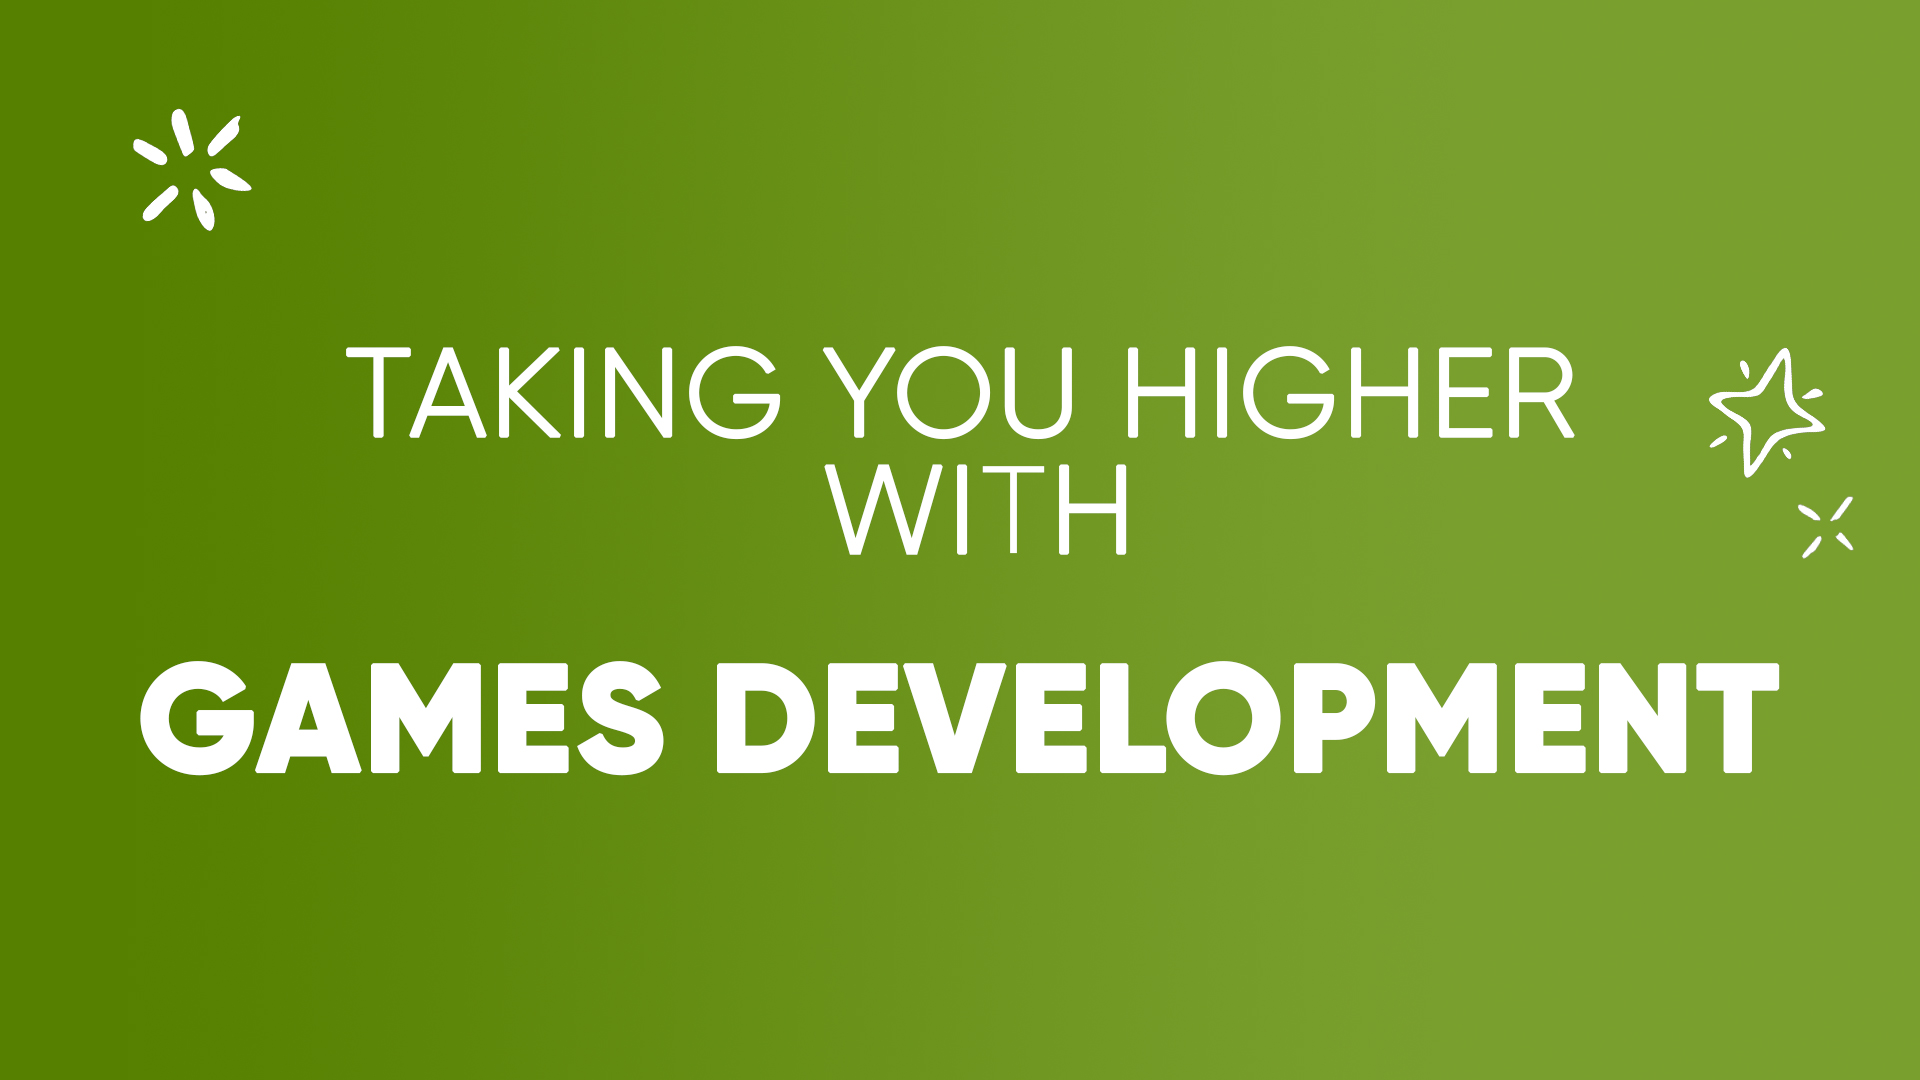 Games Development at Middlesbrough College